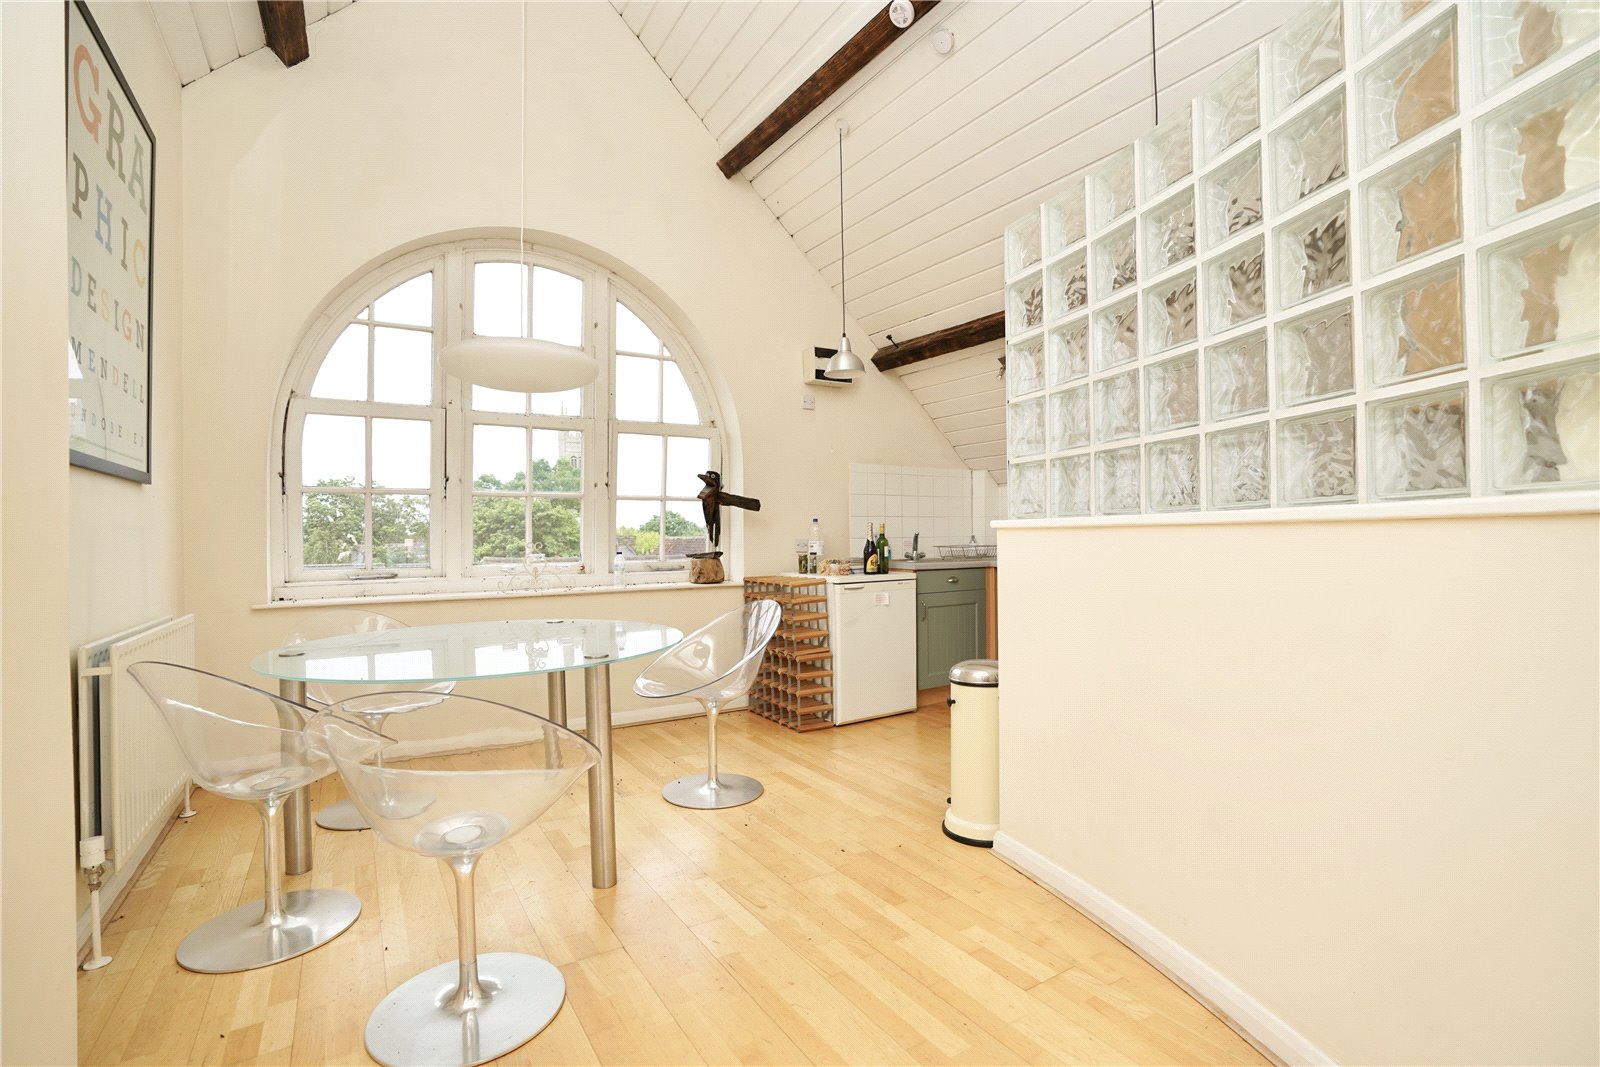 3 bed apartment for sale in Chandlers Wharf, St. Neots  - Property Image 3